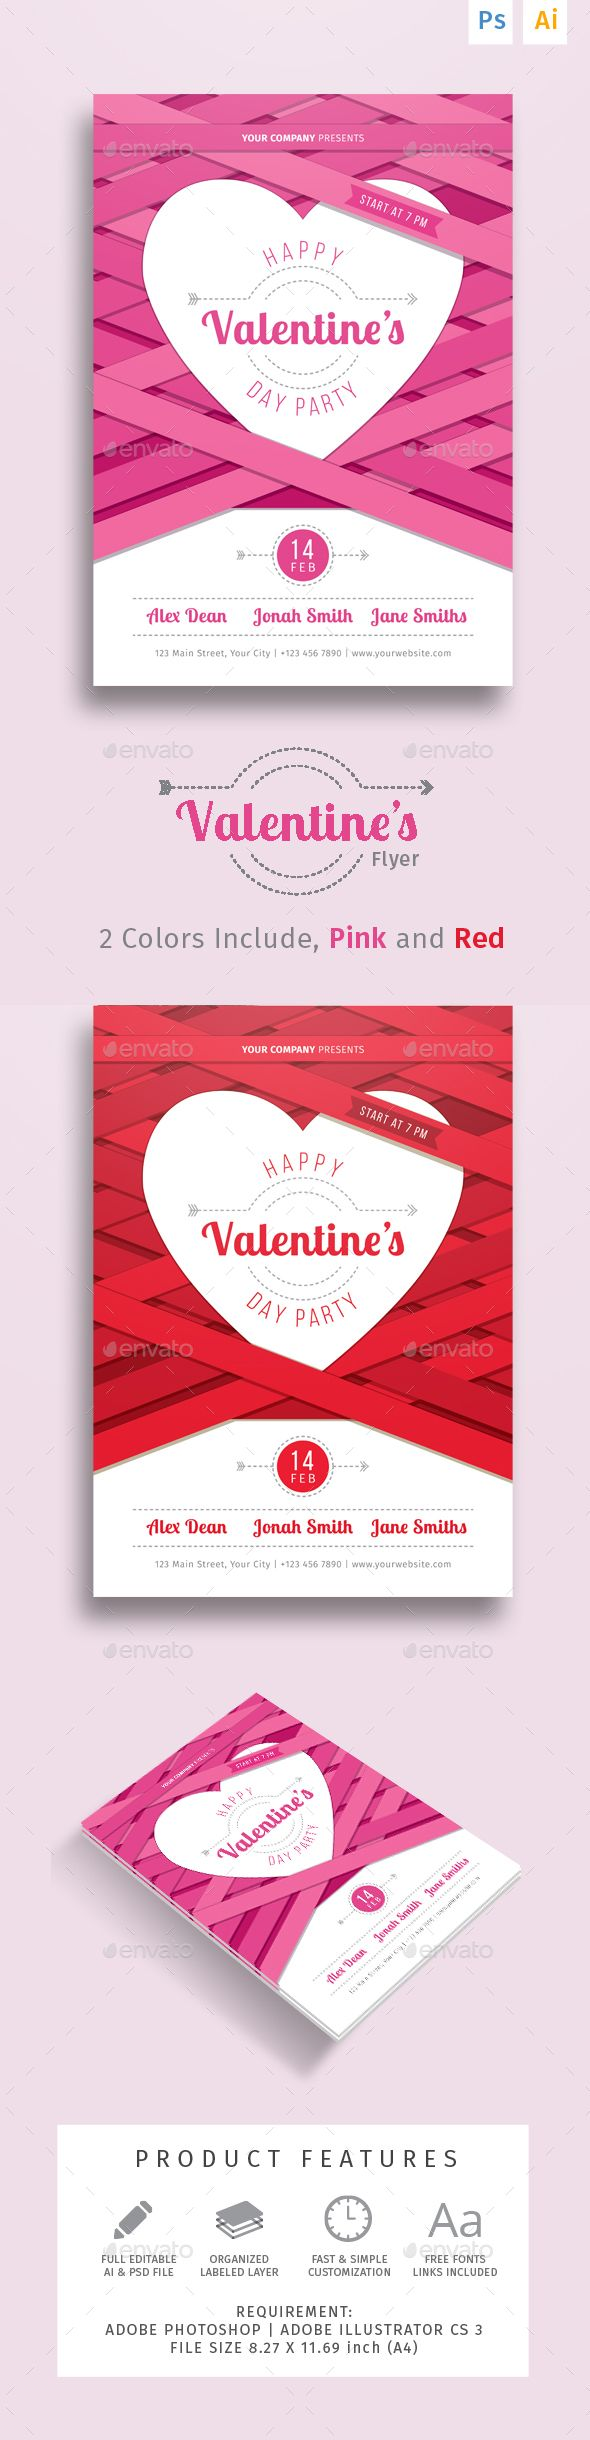 valentines party dinner flyer photoshop psd invitation clean available here https - Valentine Poster